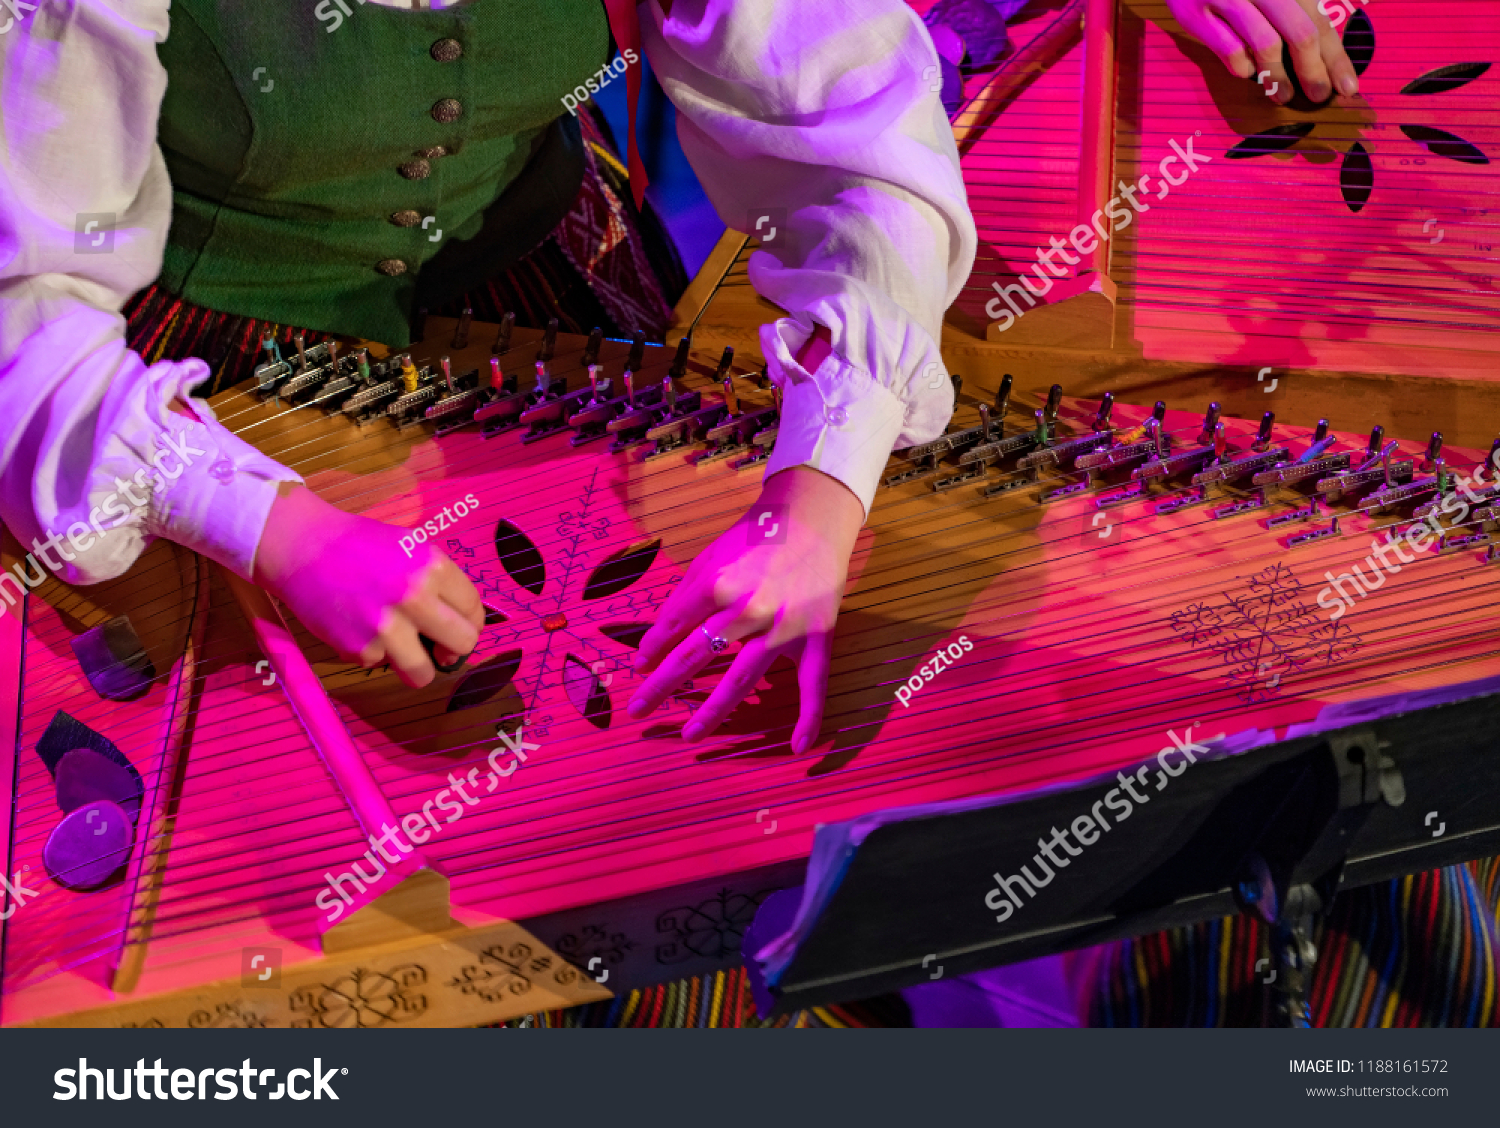 Hands playing on Kokle, a latvian plucked string instrument belonging to the Baltic box zither family #1188161572